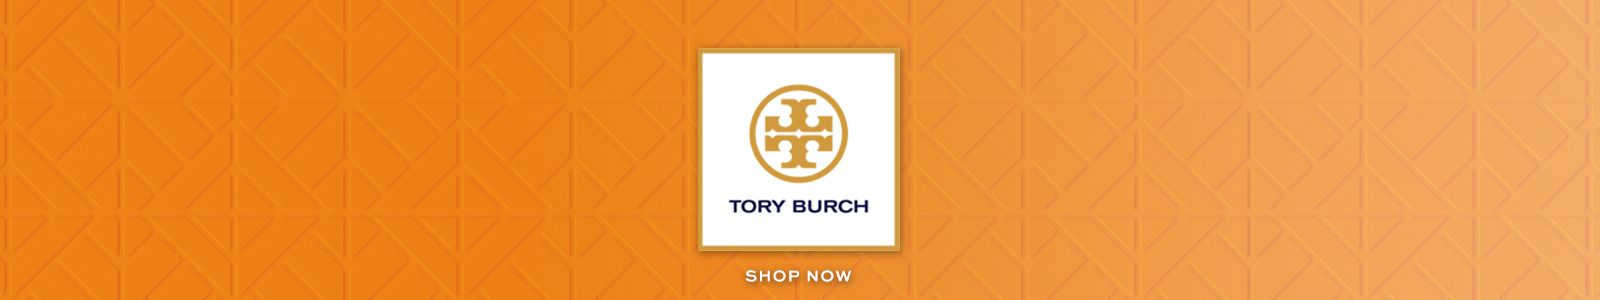 Tory Bruch, Shop Now